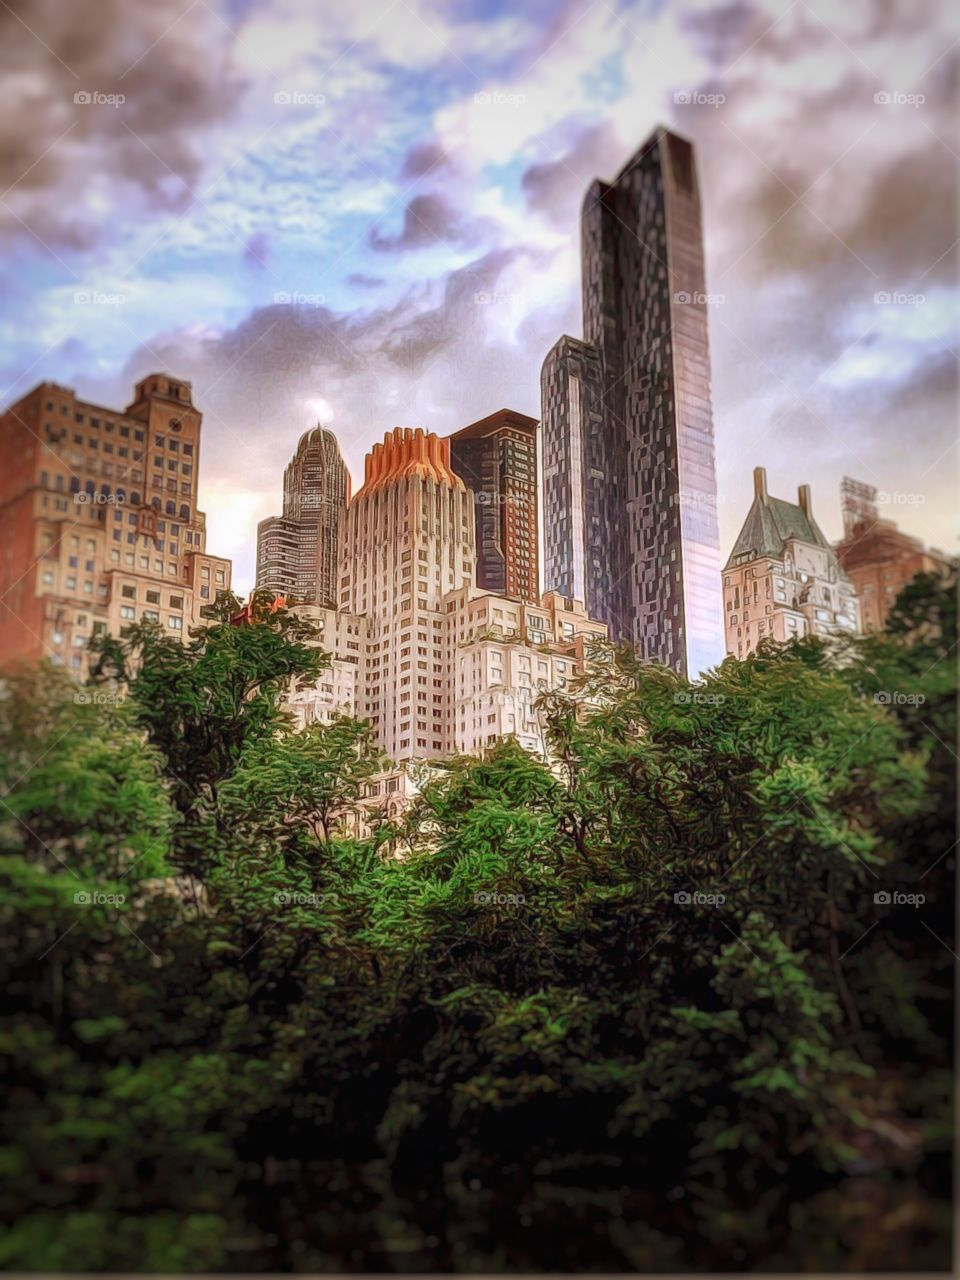 Skyscapers-Upper West Side, Manhattan, New York City.